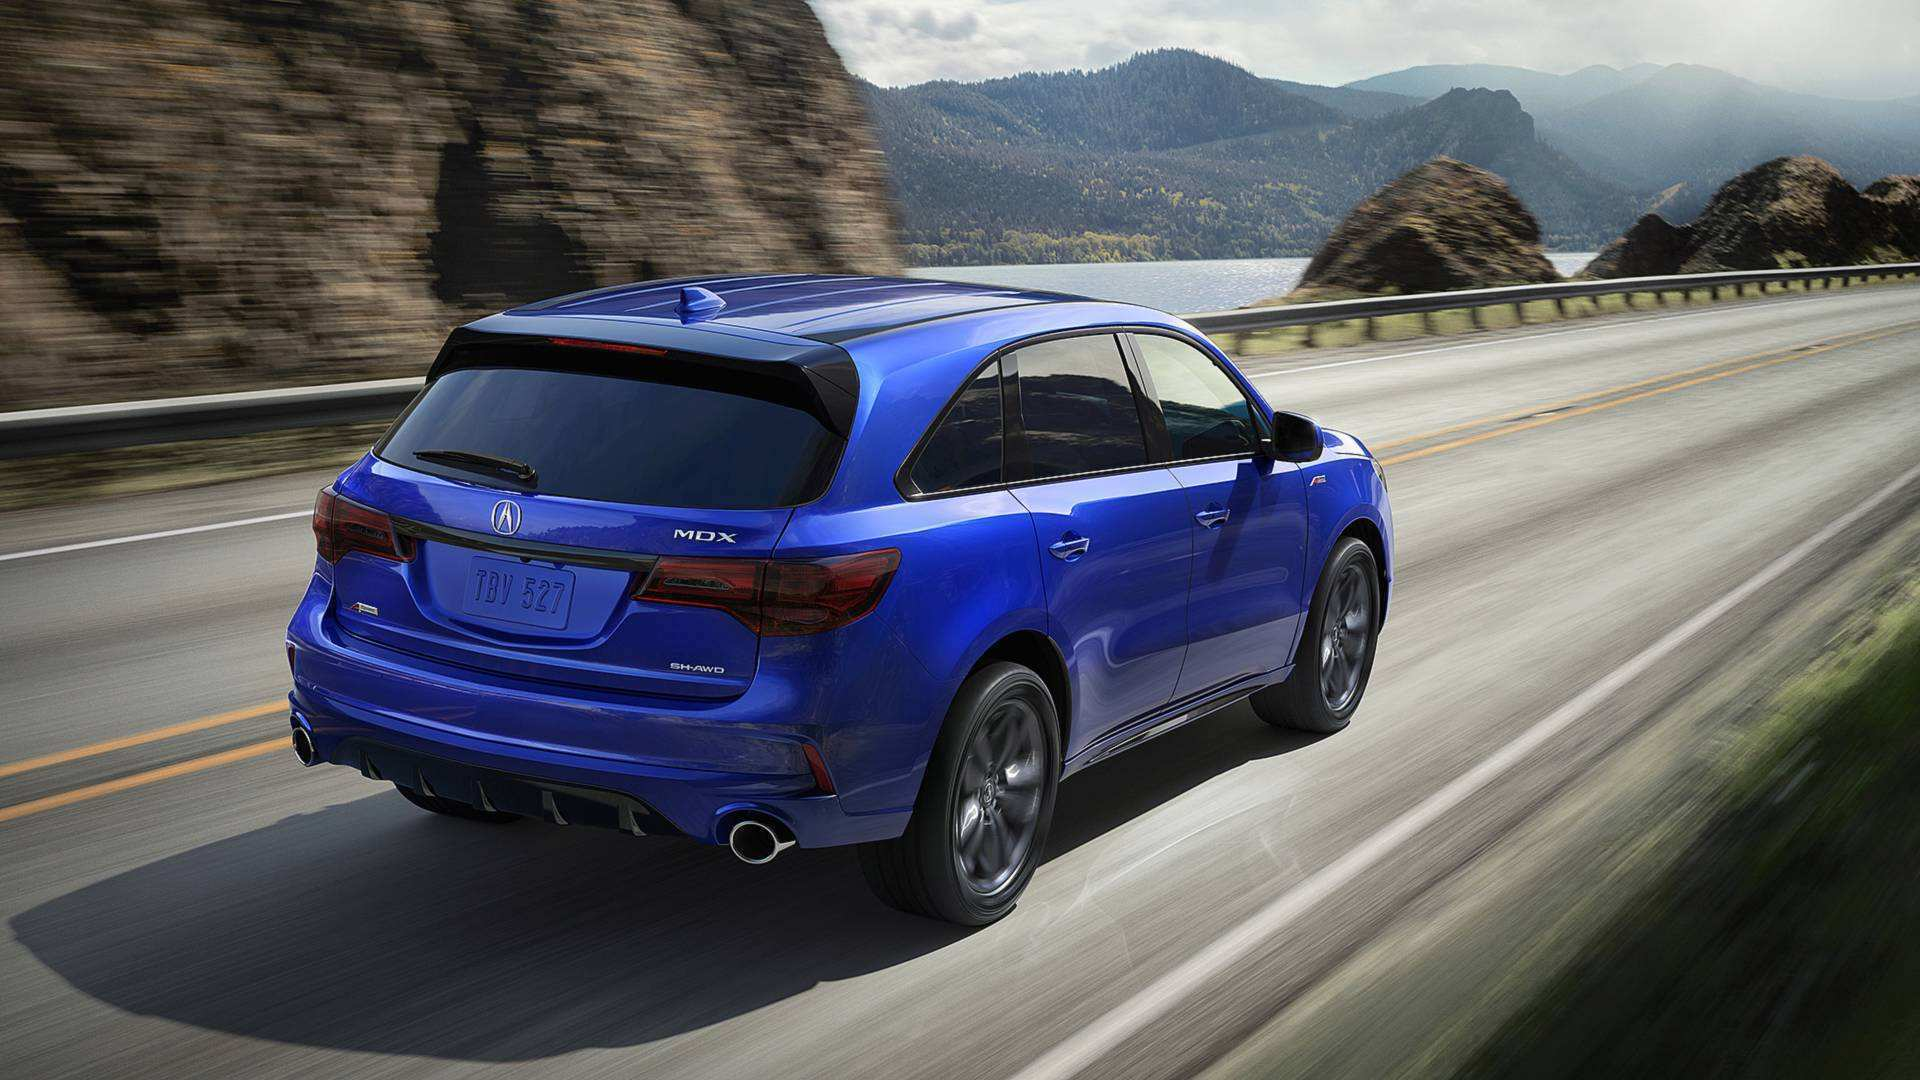 42 New 2020 Acura Mdx Aspec Release Date And Concept